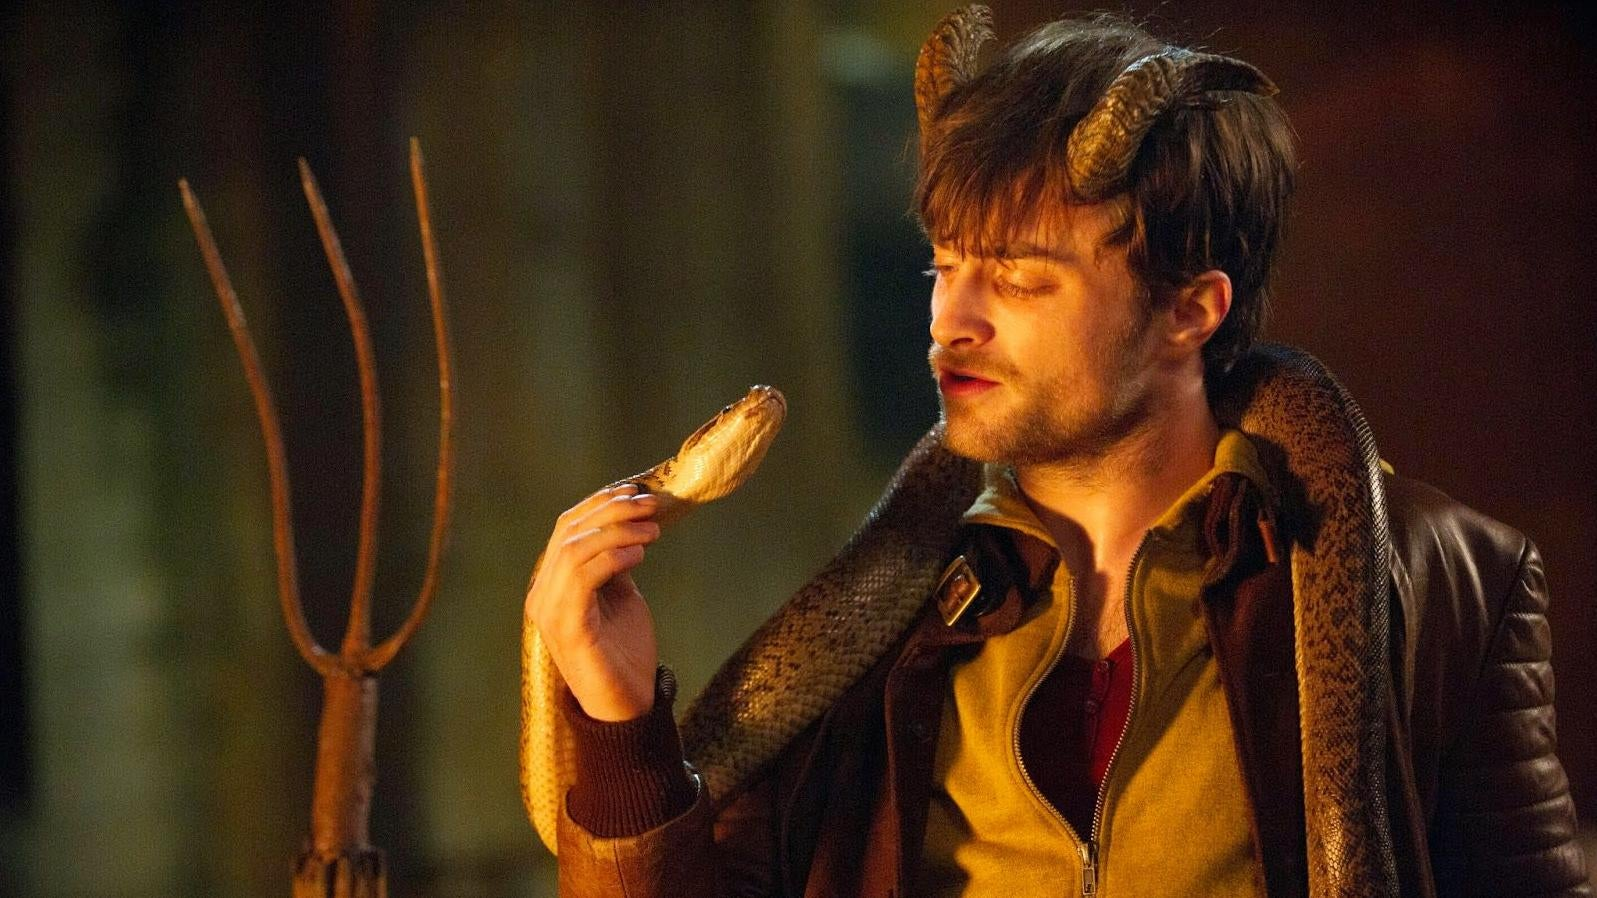 All Hail Daniel Radcliffe's 6 Weirdest Post-Harry Potter Career Choices (So Far)